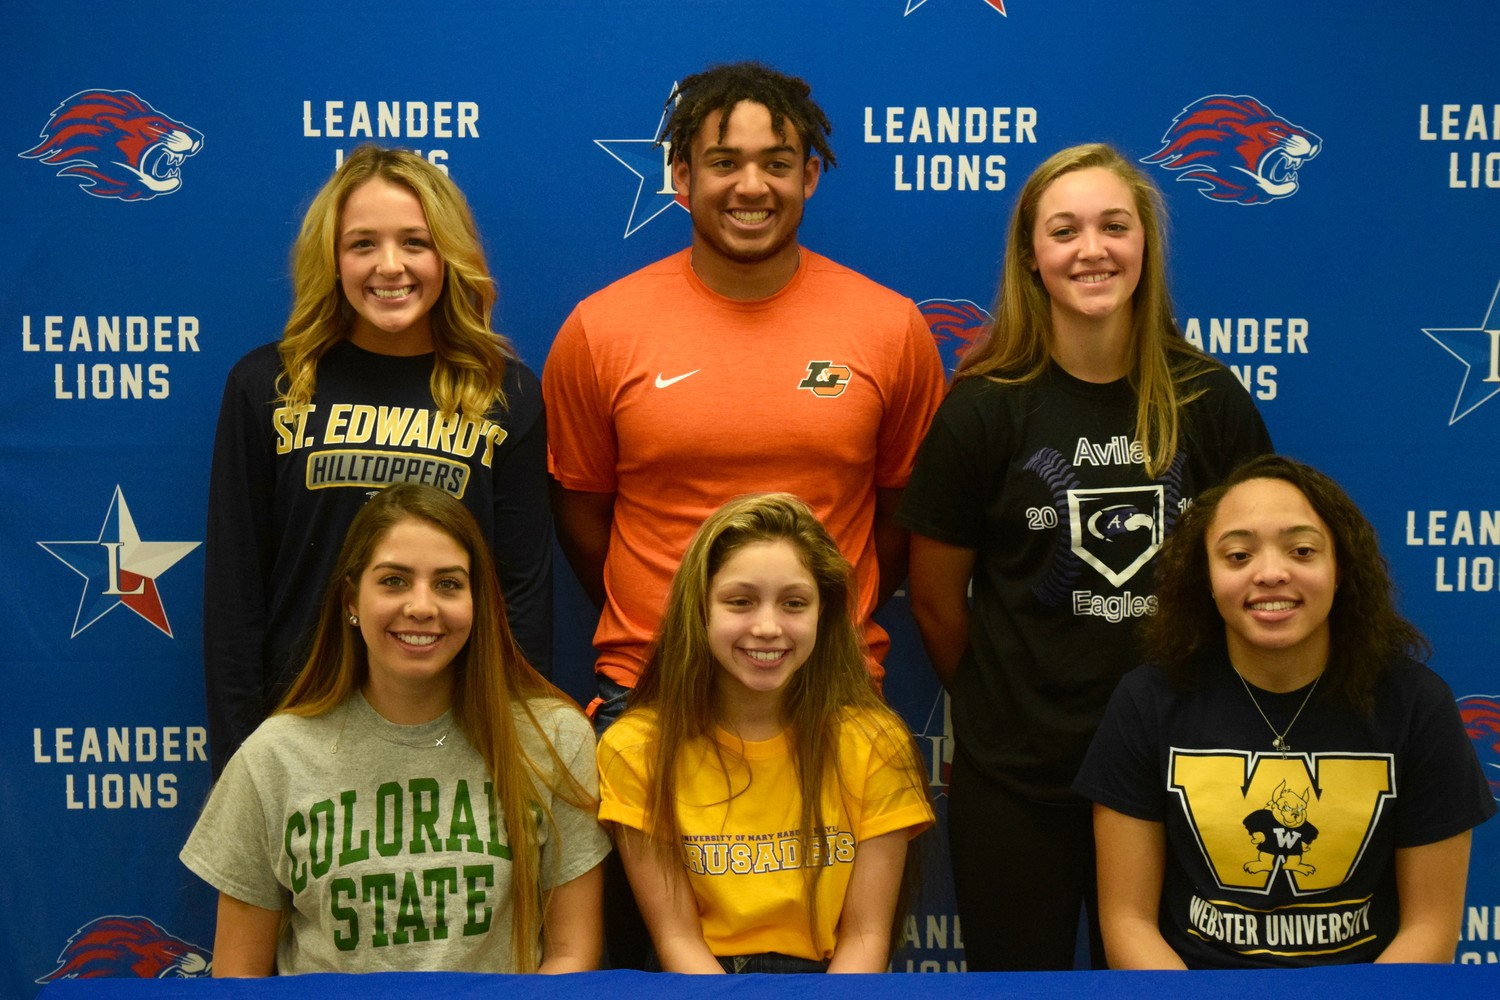 Top row: Madison Mallach (St. Edward's University), Alex Hensley (Lewis and Clark College) and Emily Walton (Avila University). Bottom row: Marissa Porras (Colorado State), Kassadie Sanders (Mary Hardin-Baylor) and Allyssa McByers (Webster University).